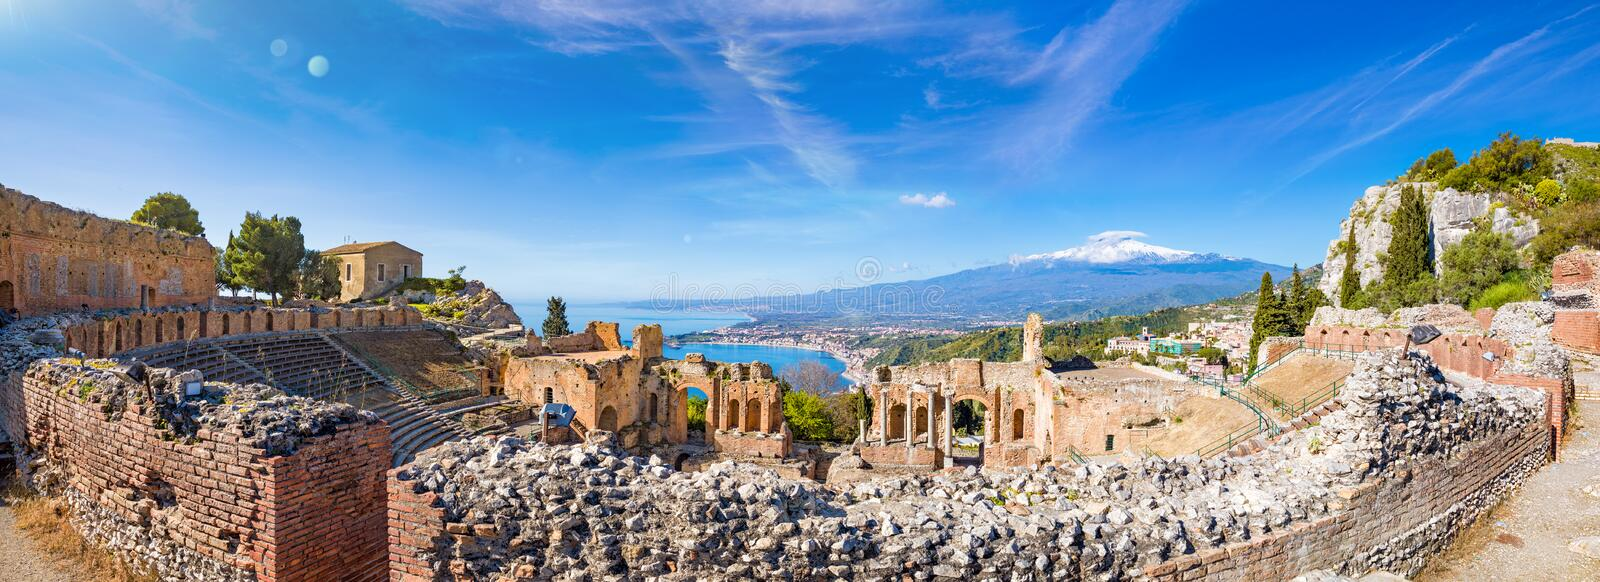 Panoramic view of ruins of Ancient Greek theatre in Taormina on background of Etna Volcano, Italy stock images